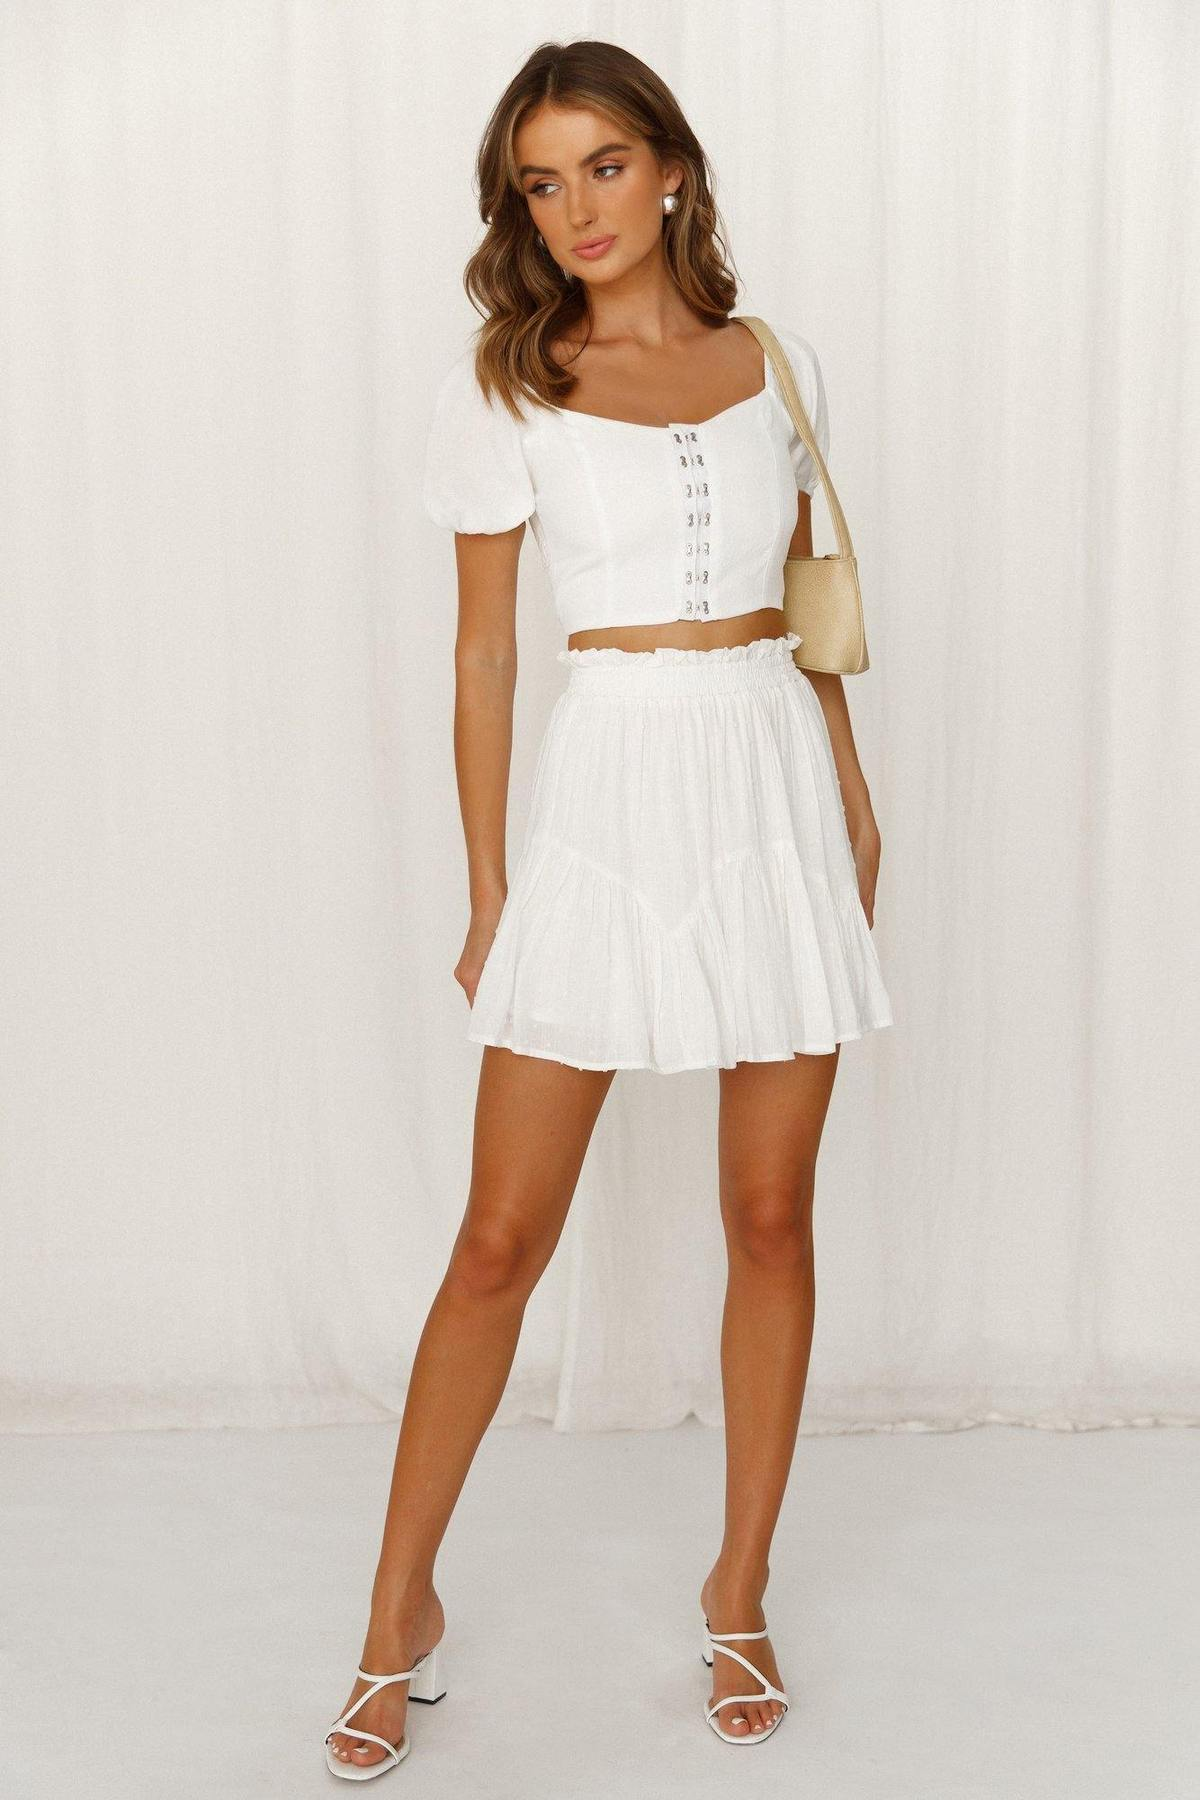 White matching co ord set with skirt